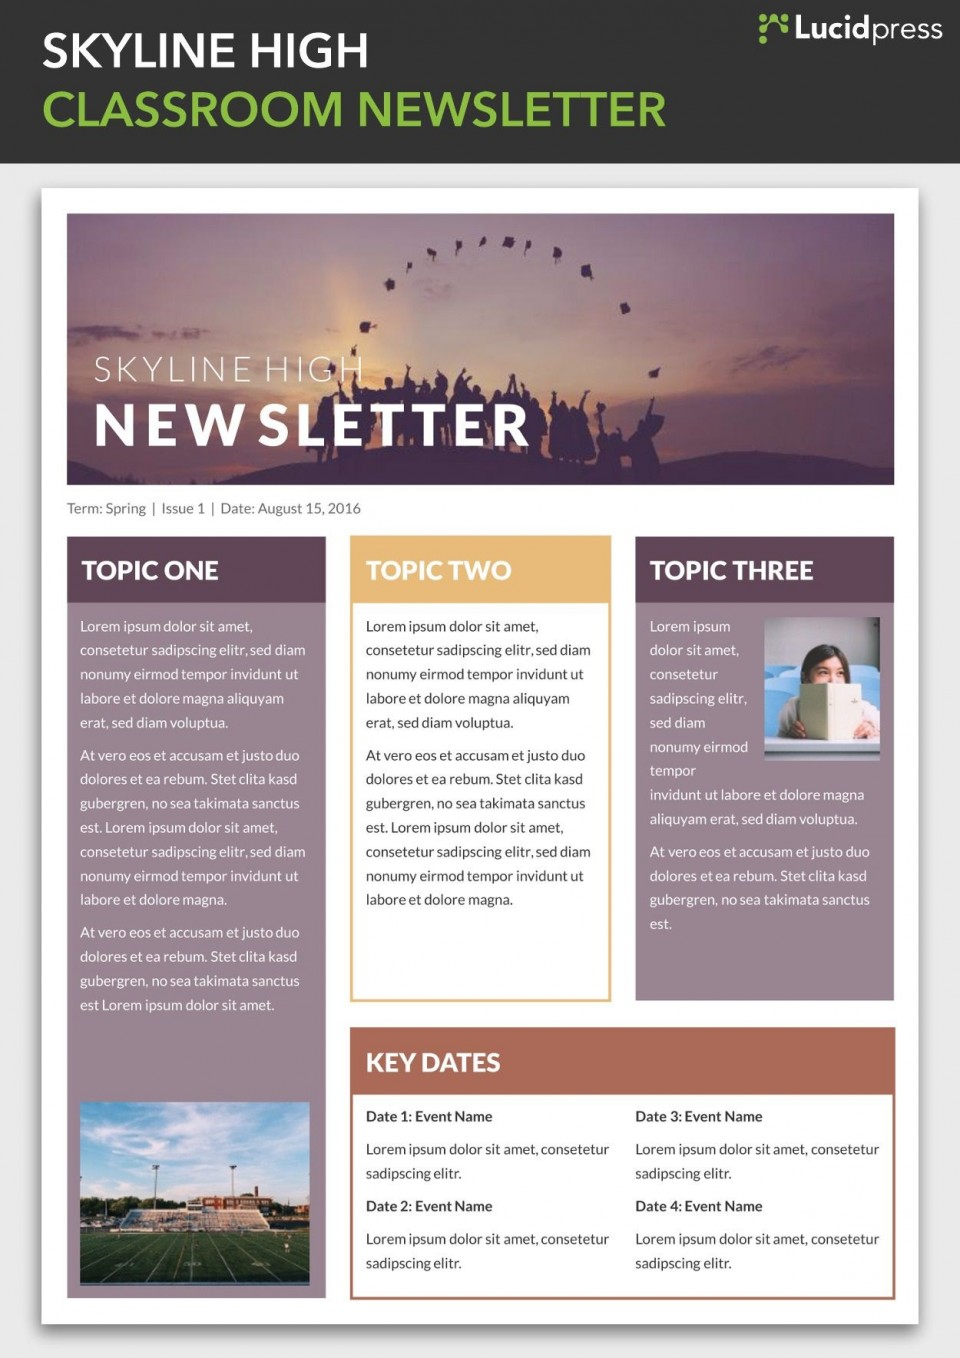 004 Simple School Newsletter Template Free Photo  Word Download Counselor960